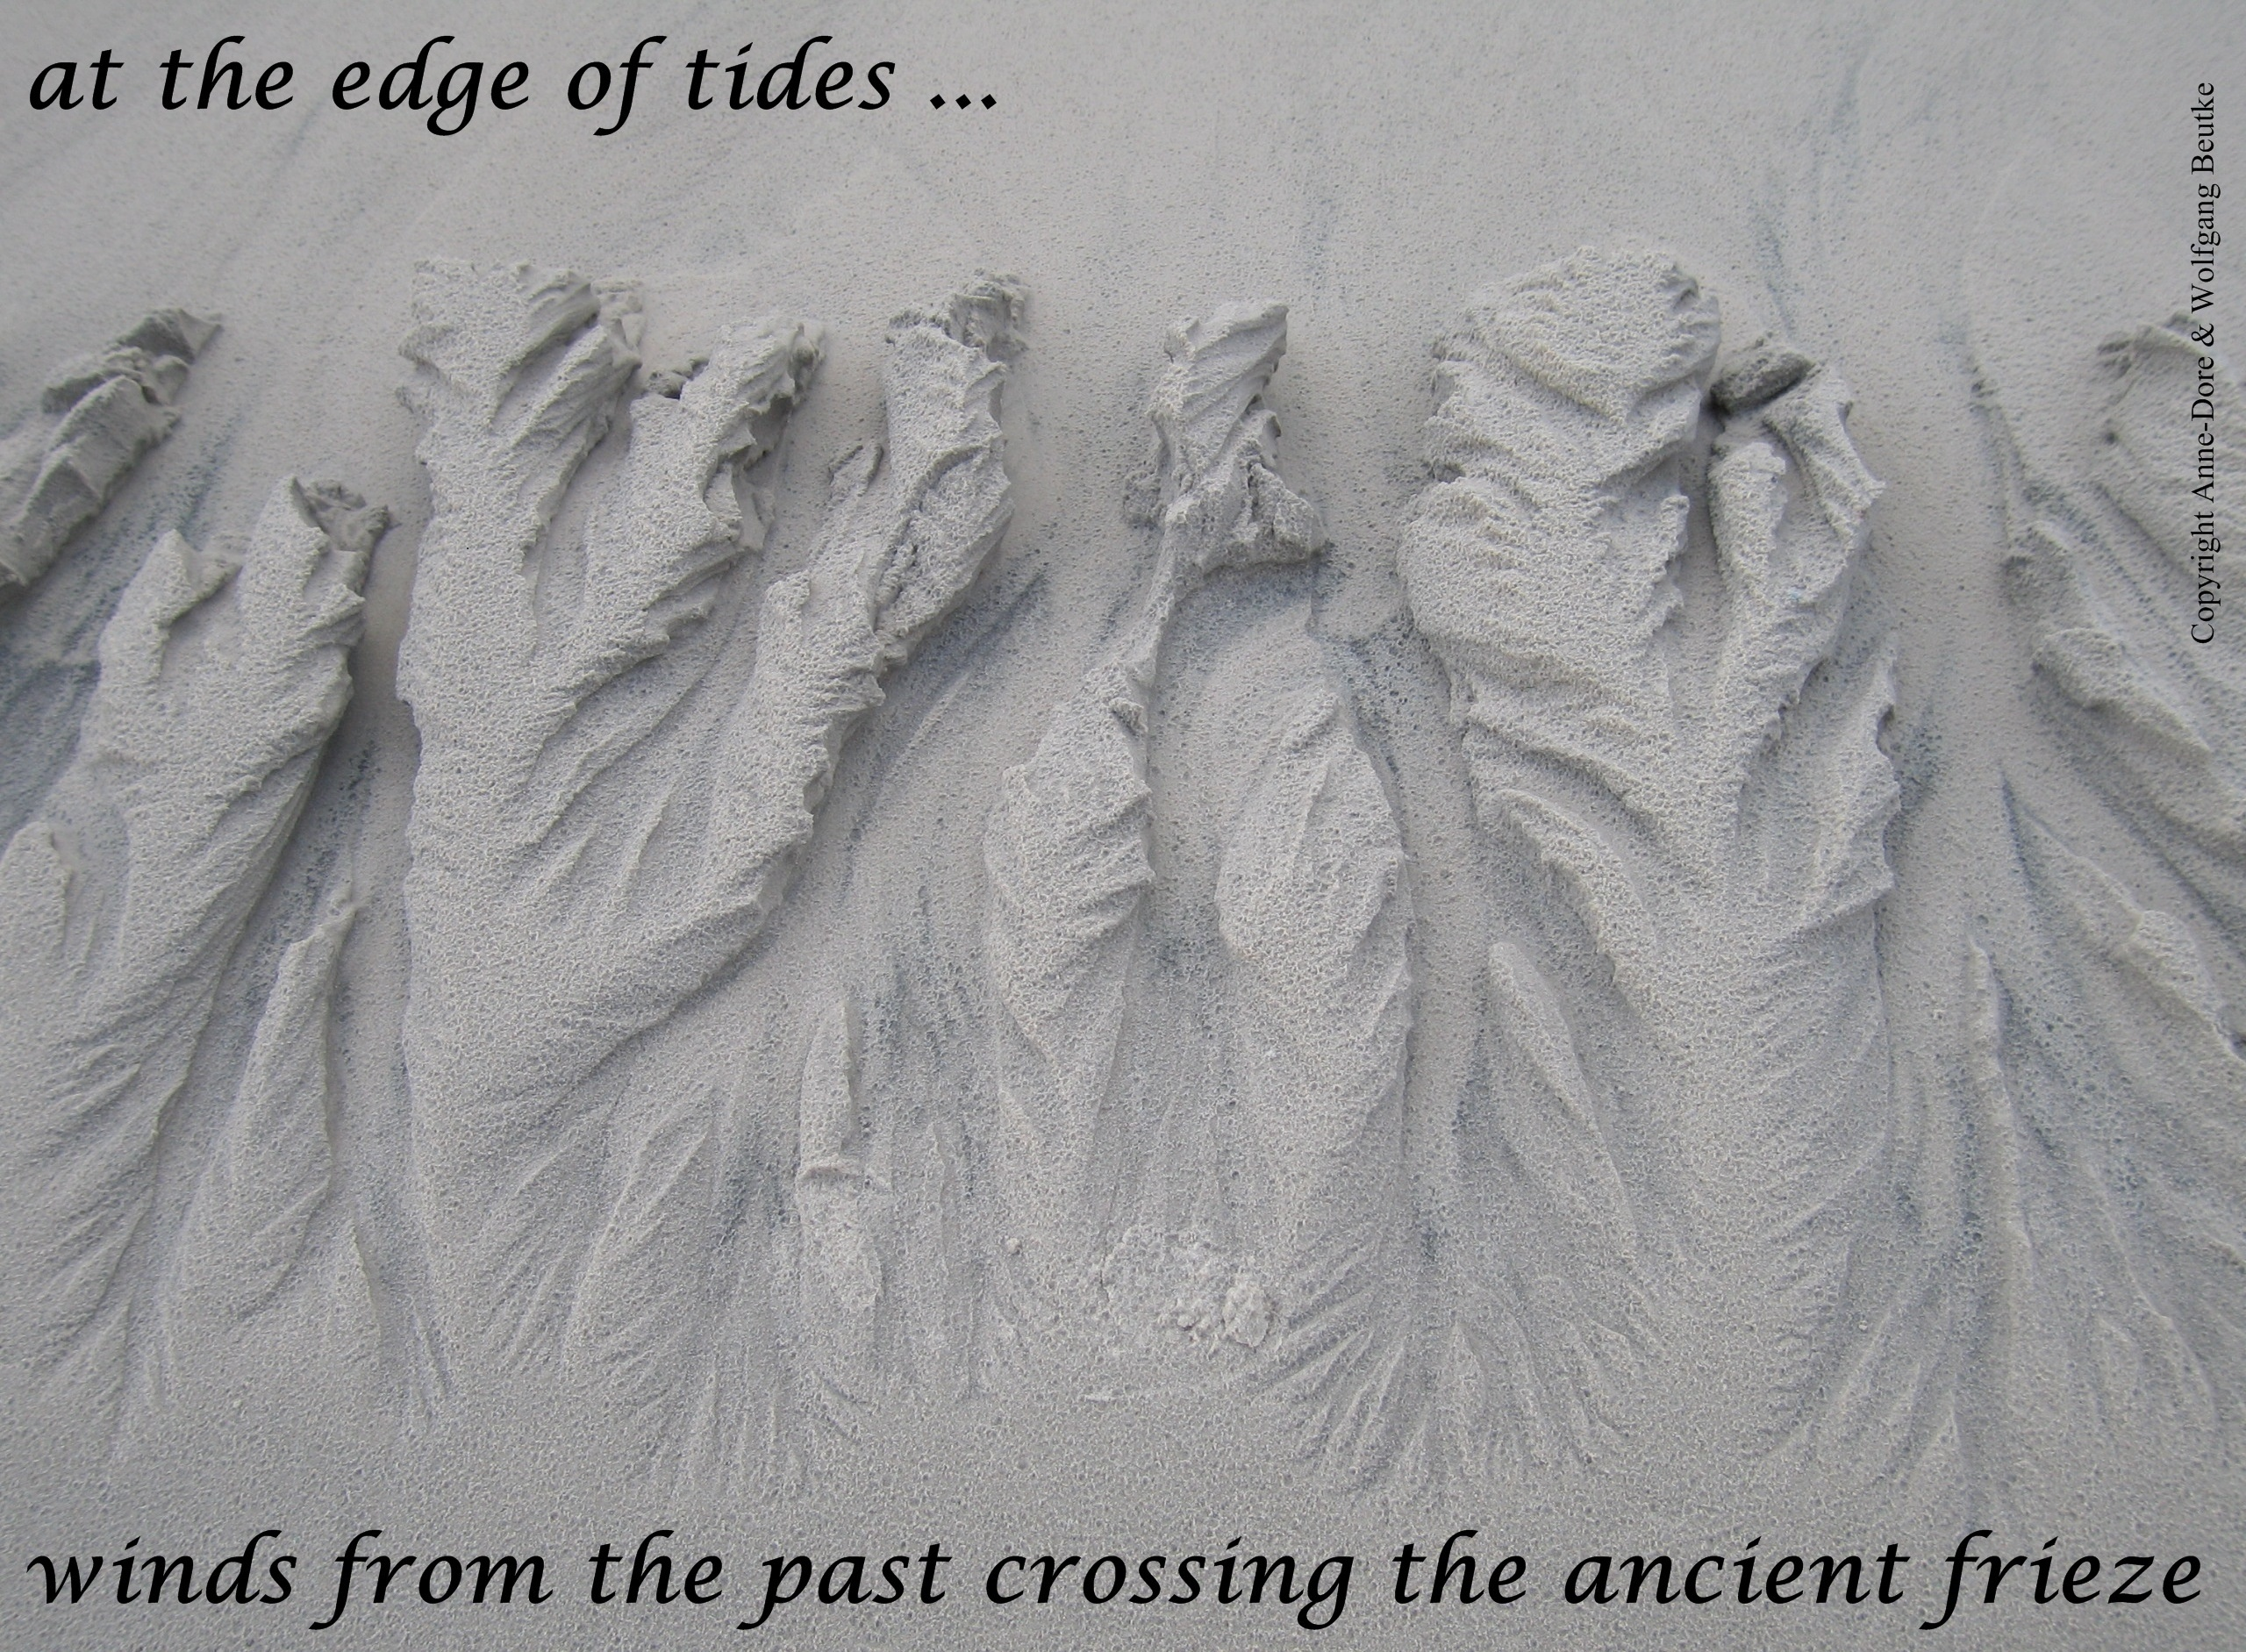 at the edge of tides